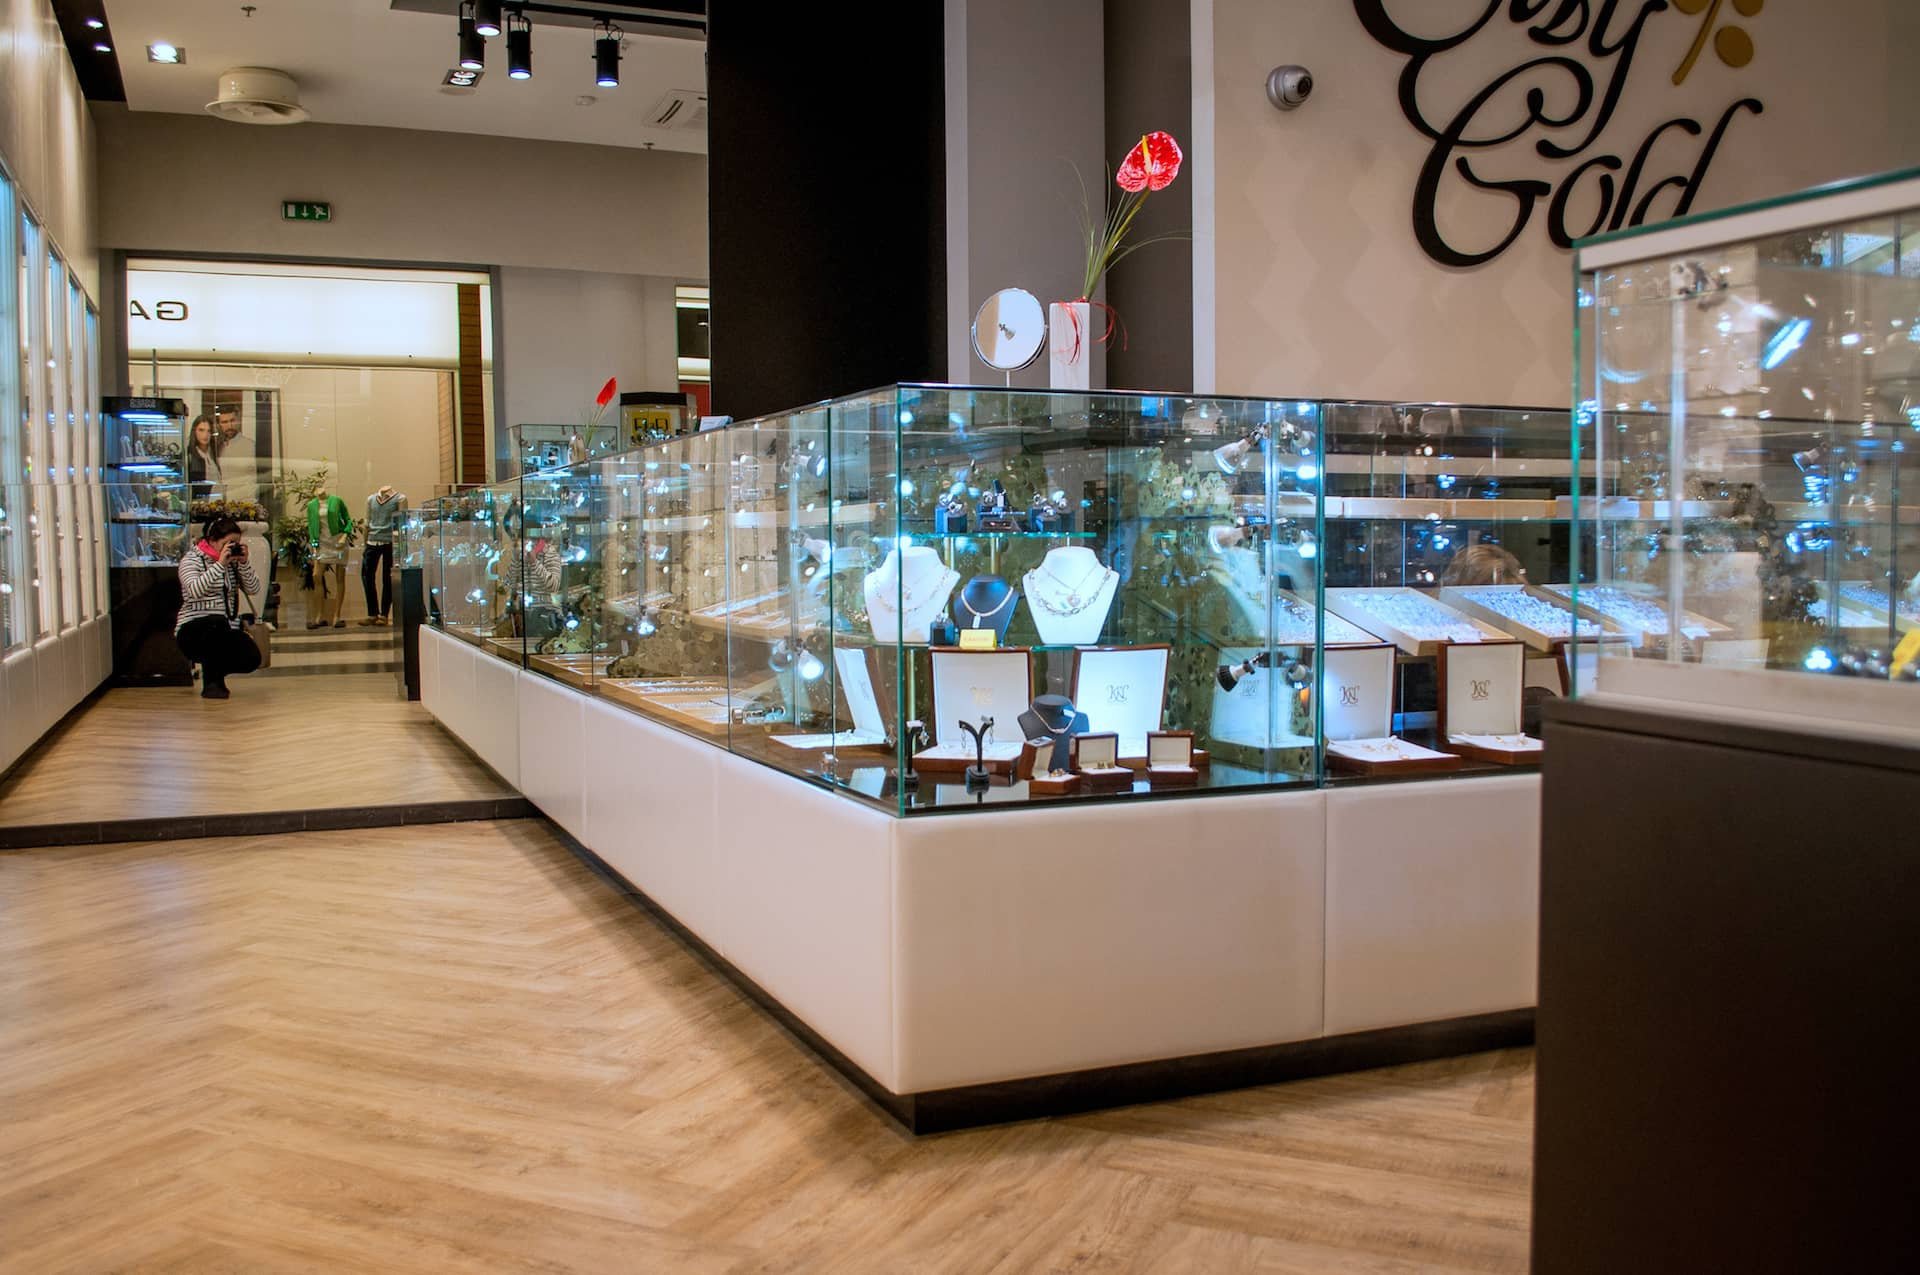 Glass display in a jewelry store